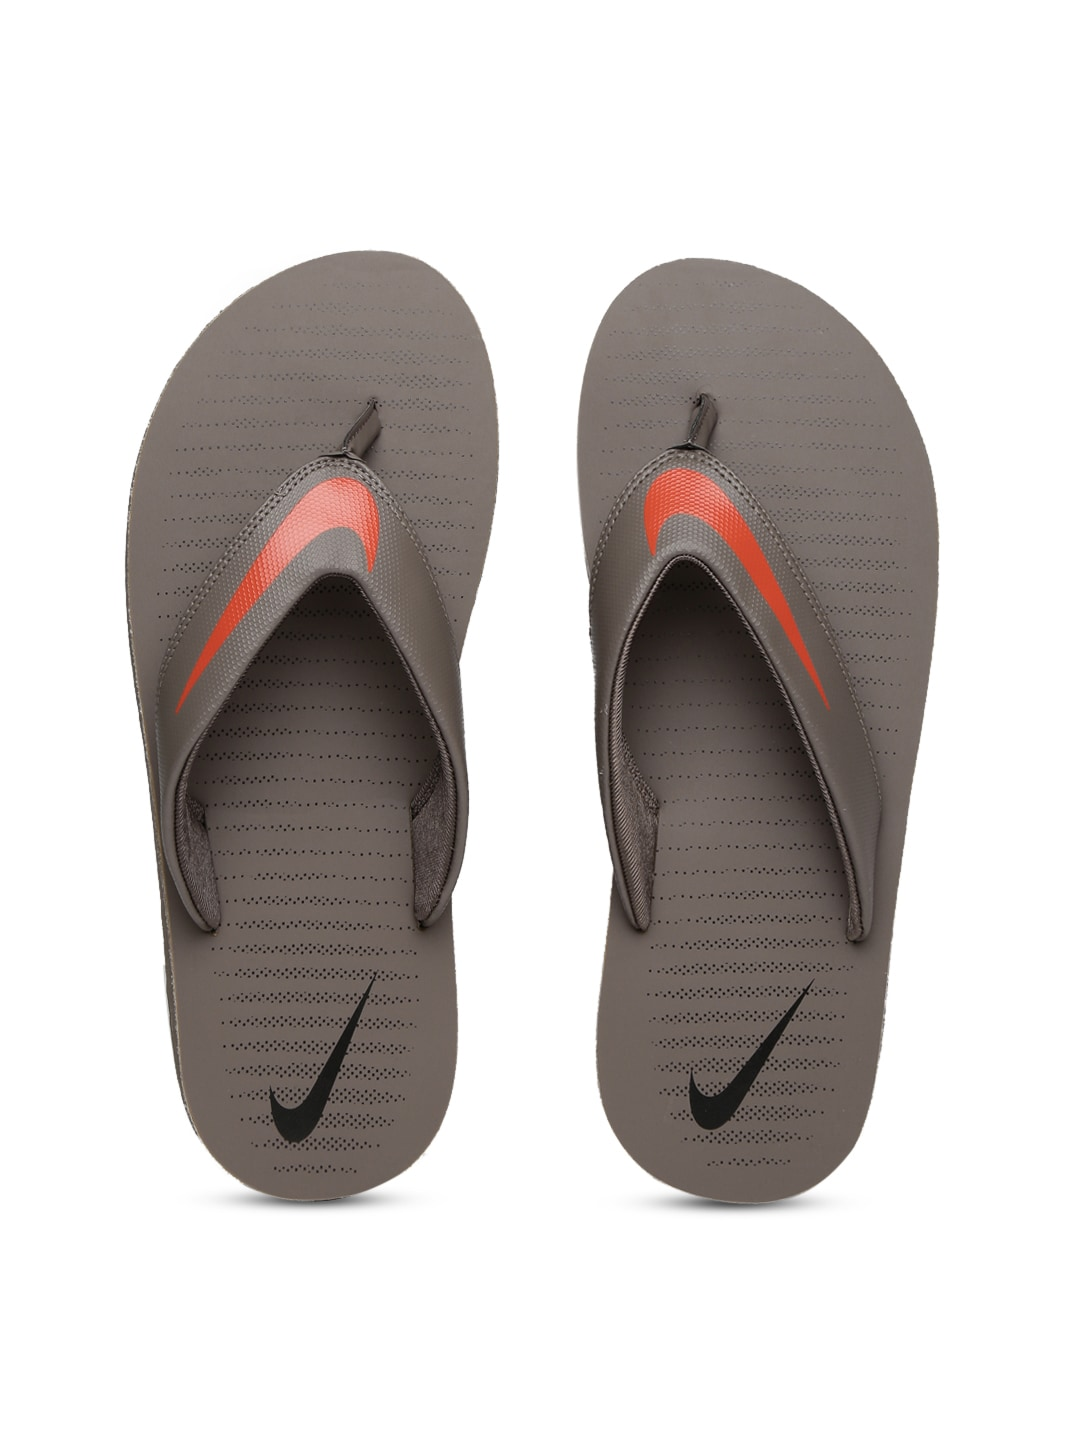 402cce75879 Nike 833808-202 Men Taupe Flip Flops - Best Price in India